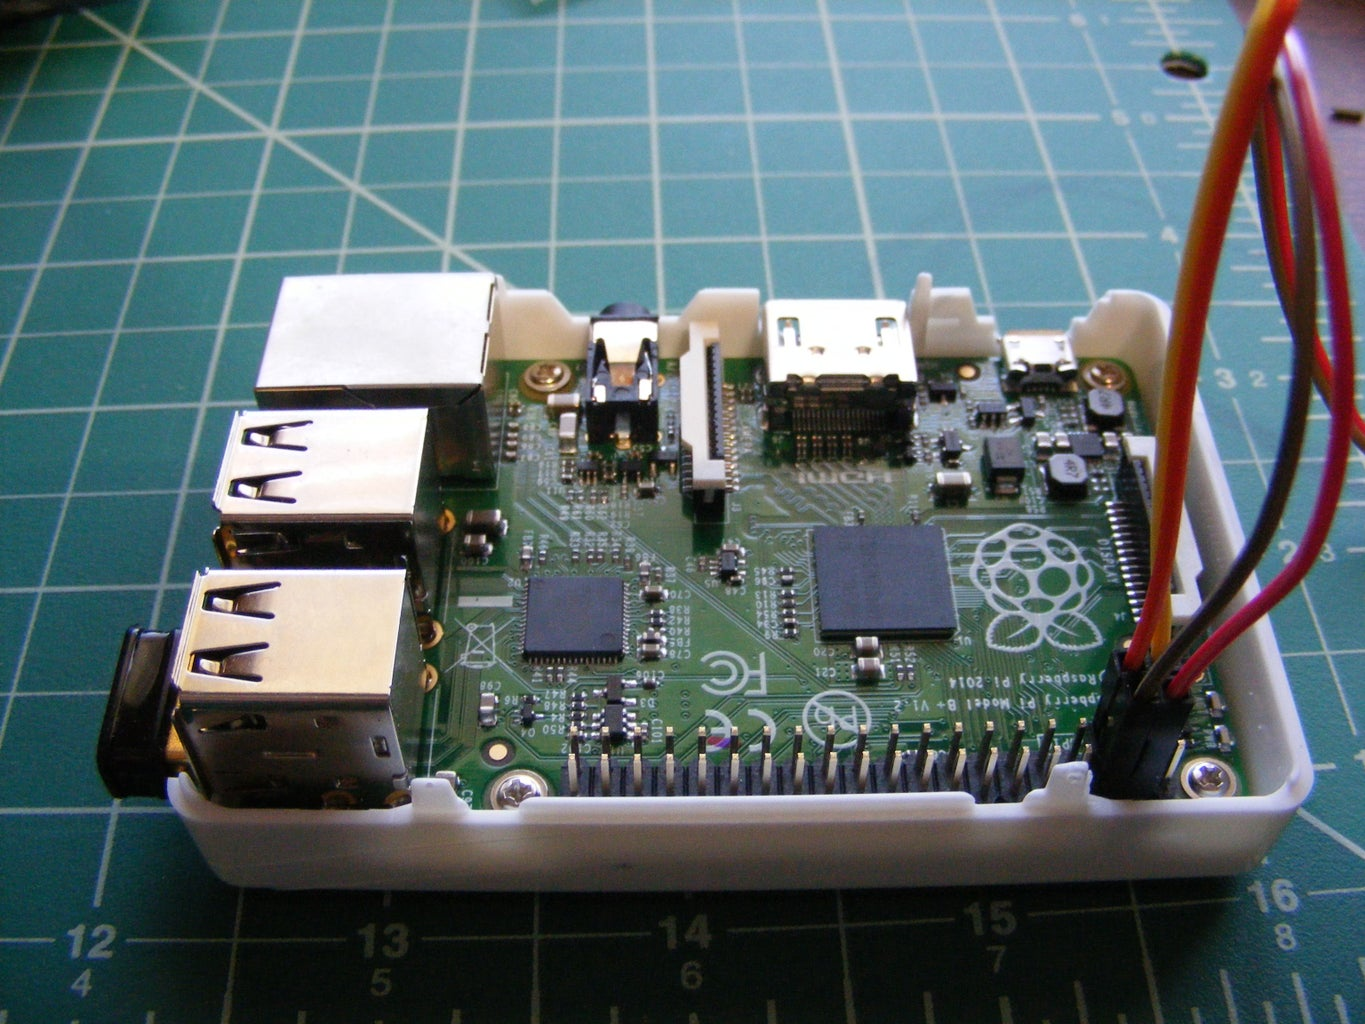 Connect LCD Display to Raspberry Pi, Setup and Test.